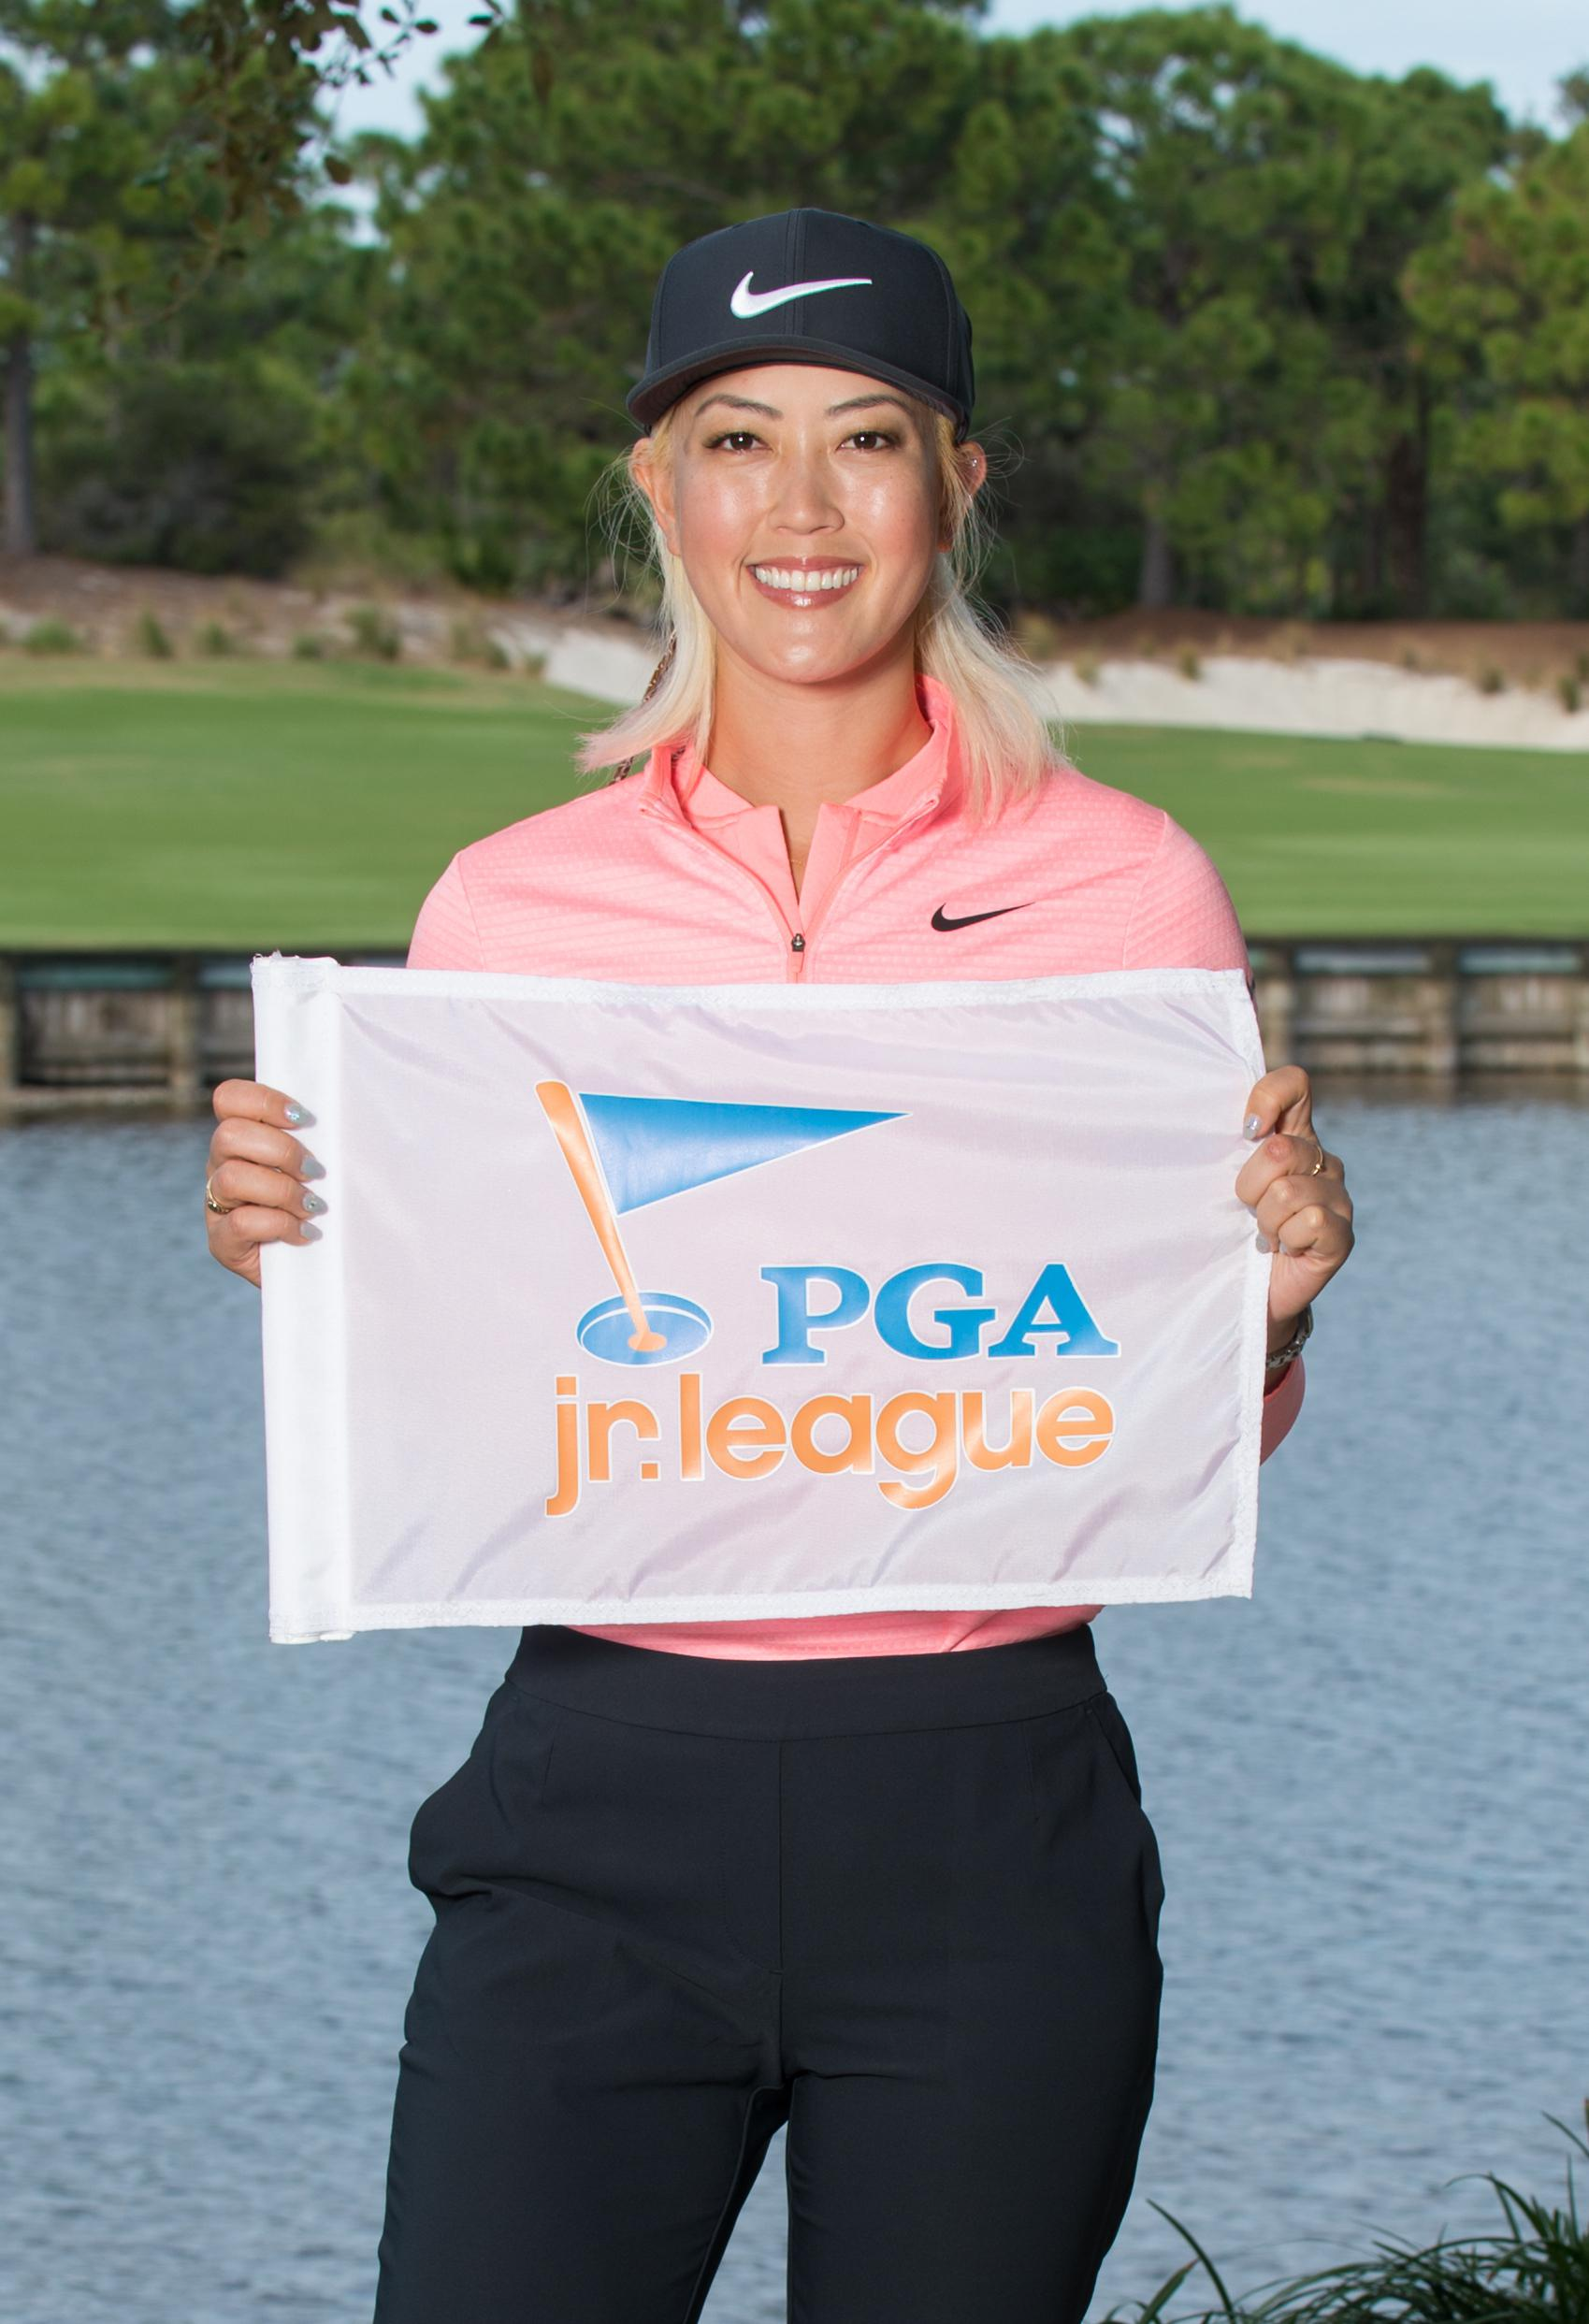 PGA Jr. League Ambassador Michelle Wie